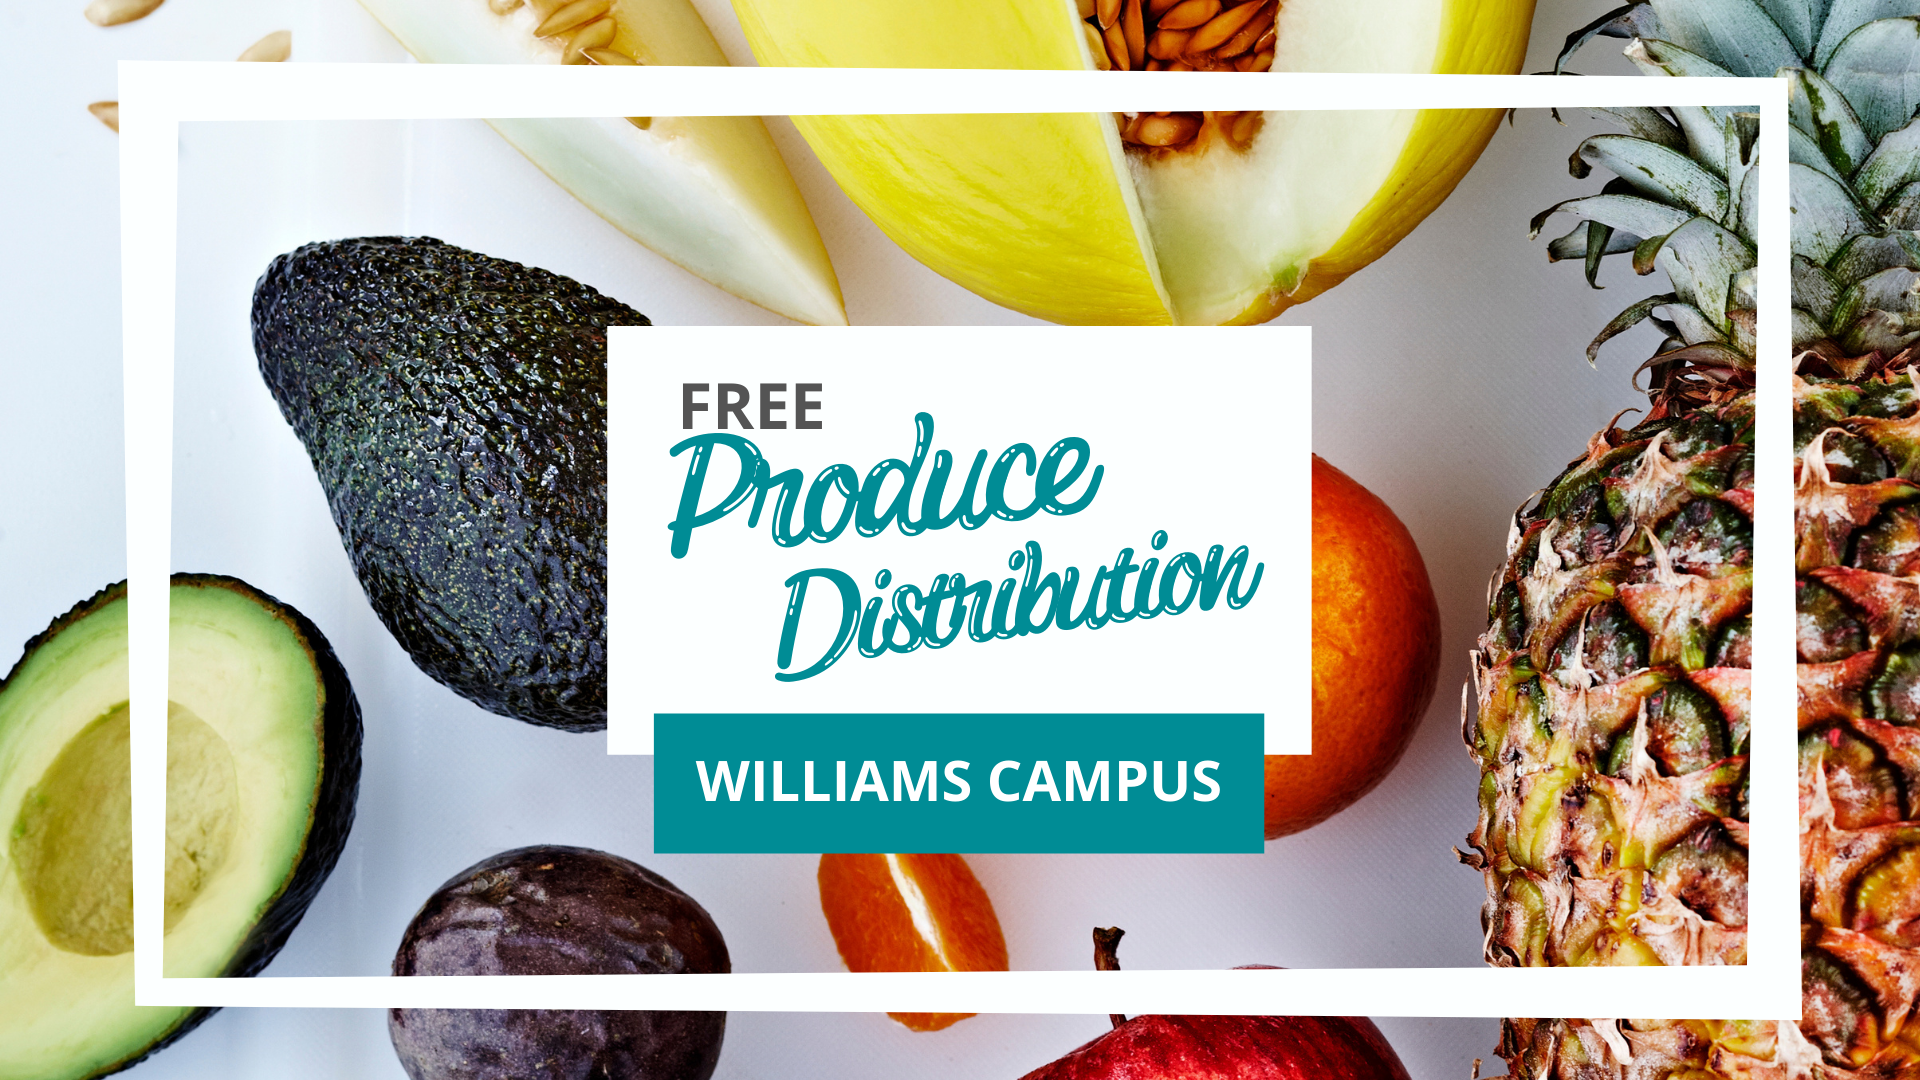 Williams Campus Free Distribution Produce